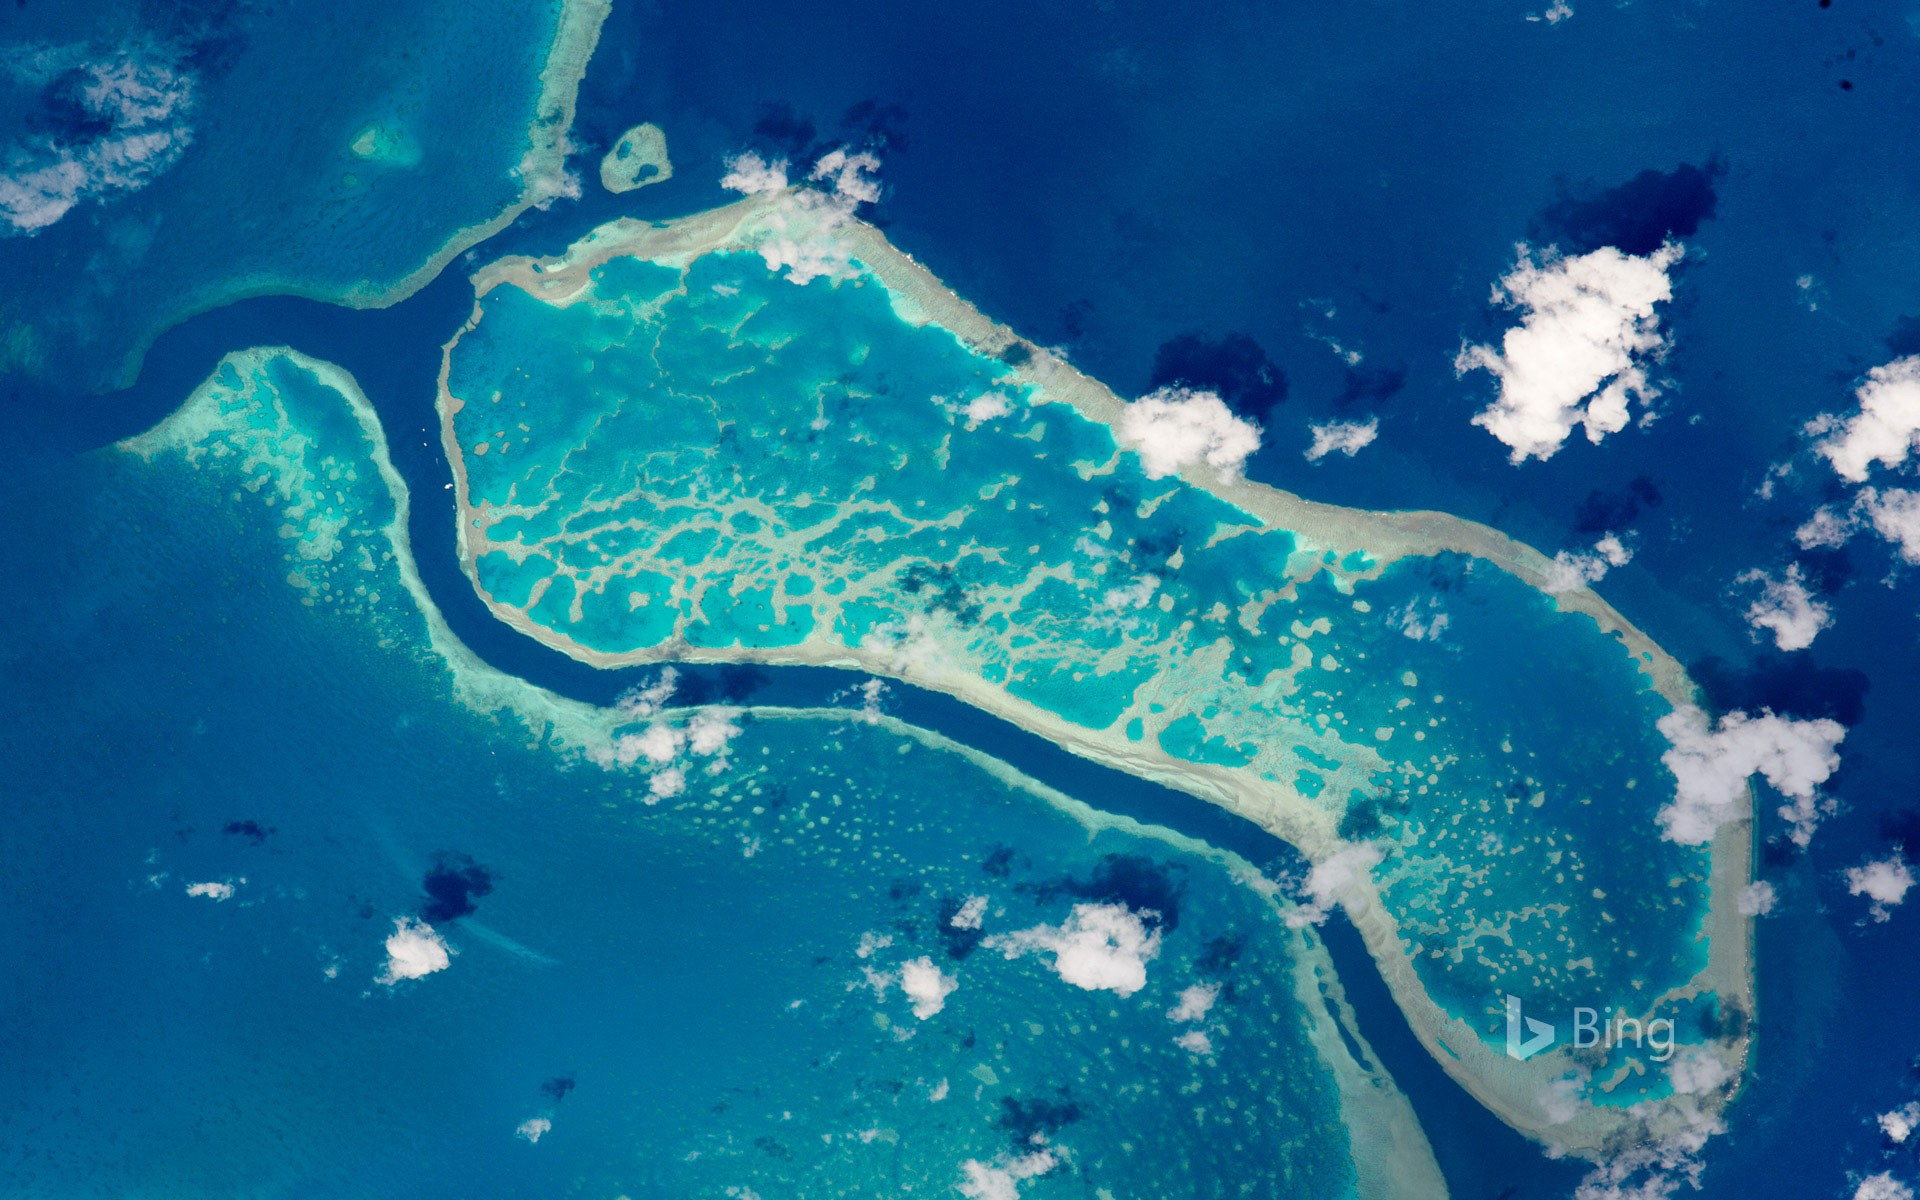 The Great Barrier Reef photographed from the International Space Station